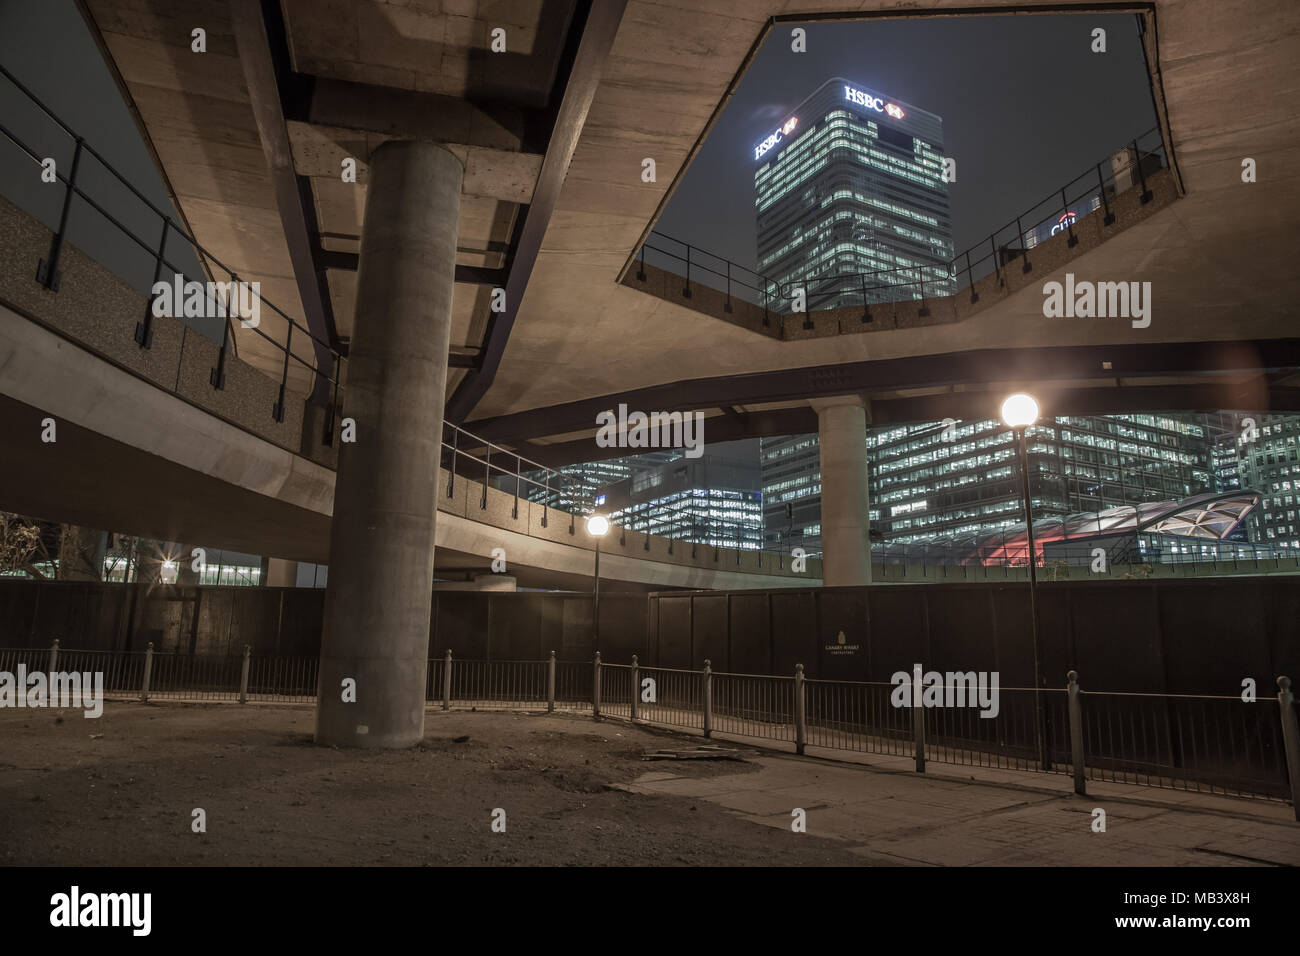 Night Photography on the Isle of Dogs - Stock Image